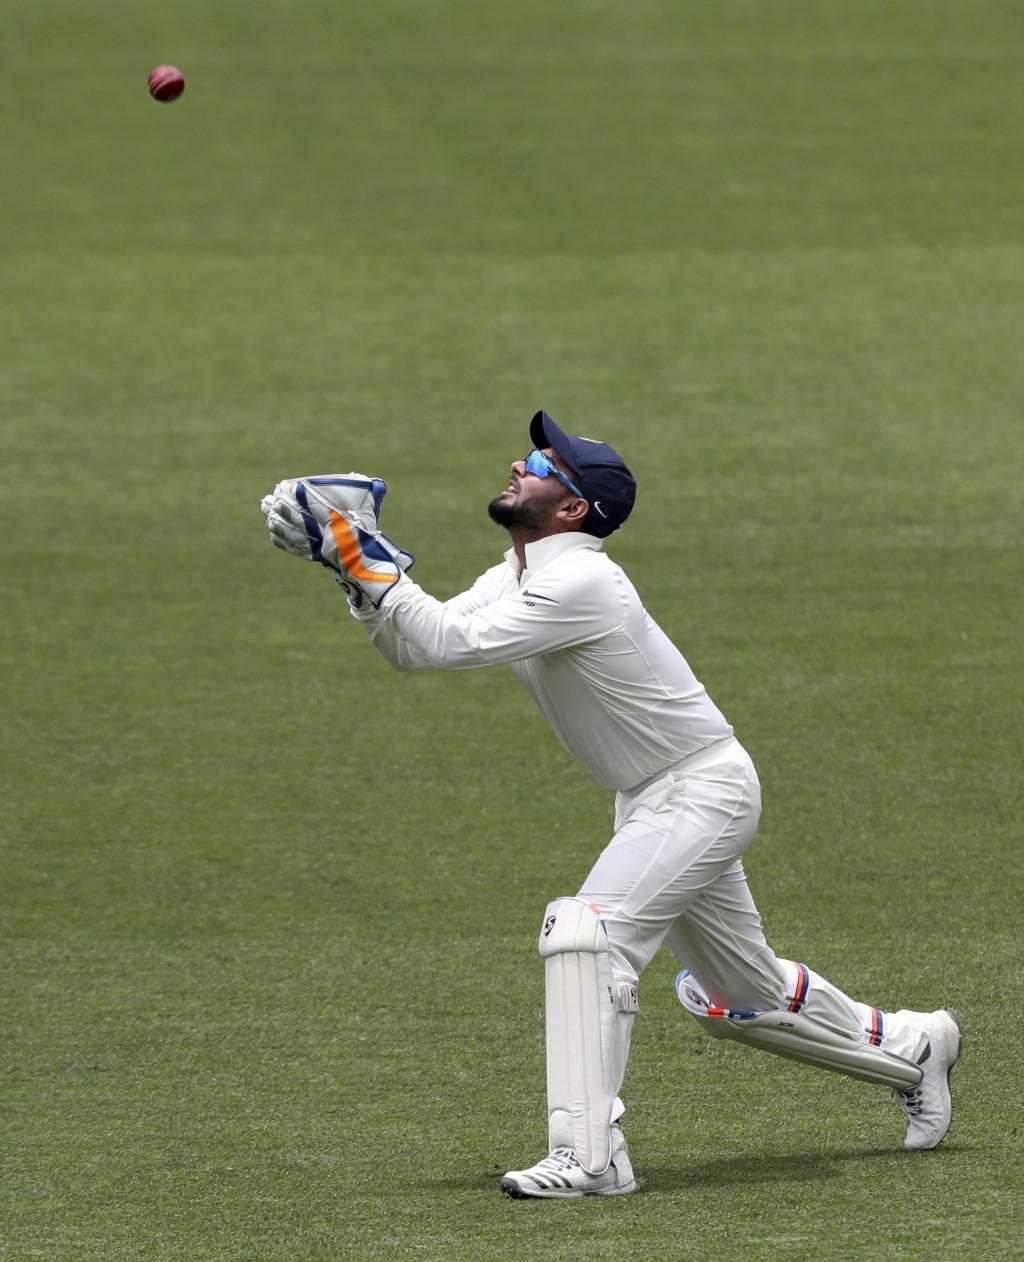 India's Rishabh Pant takes a catch to dismiss Australia's Tim Paine on the final day of the first cricket test between Australia and India in Adelaide